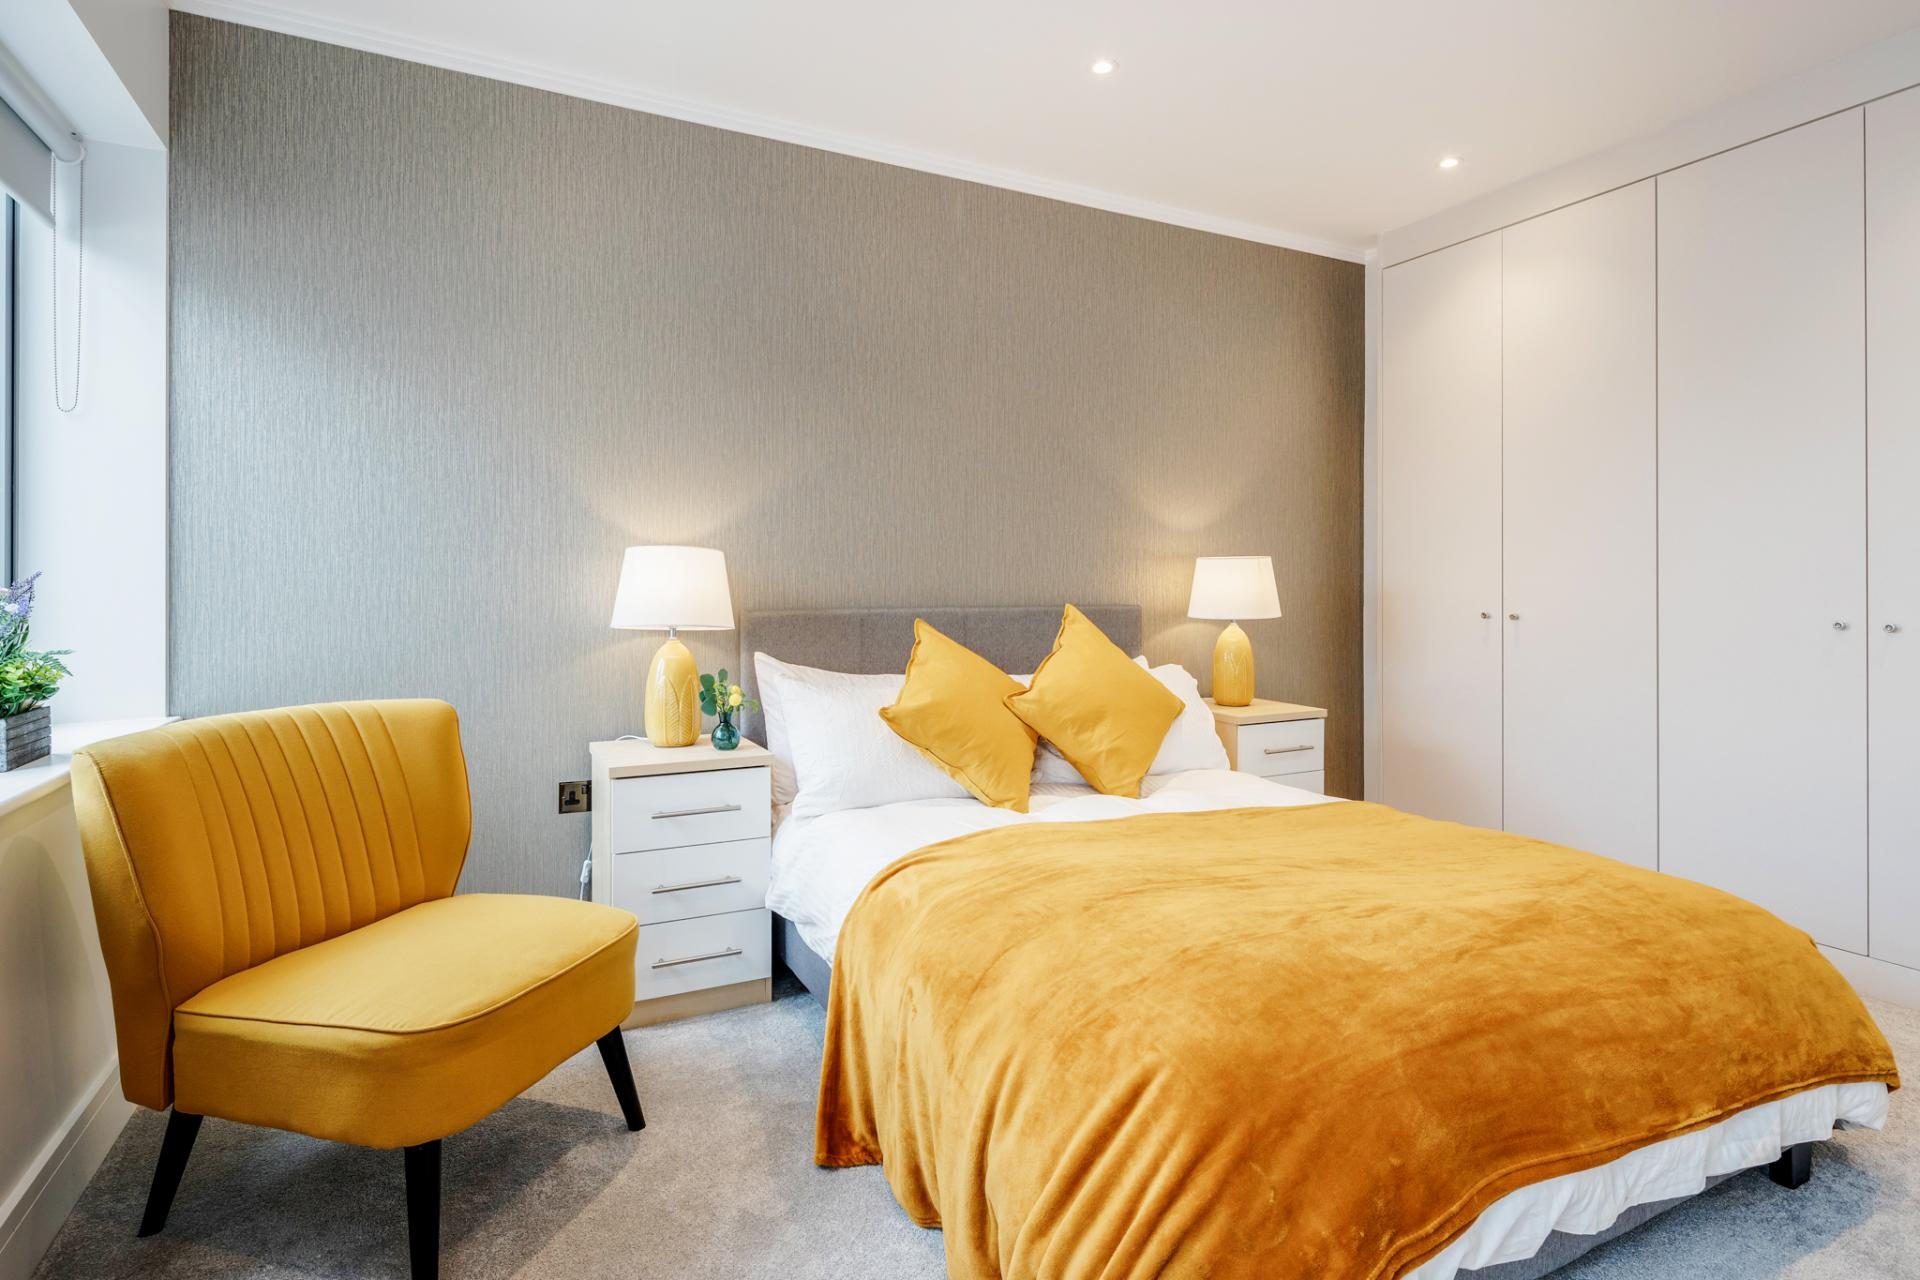 Bedroom at Dudley House Apartments, Brentford, London - Citybase Apartments